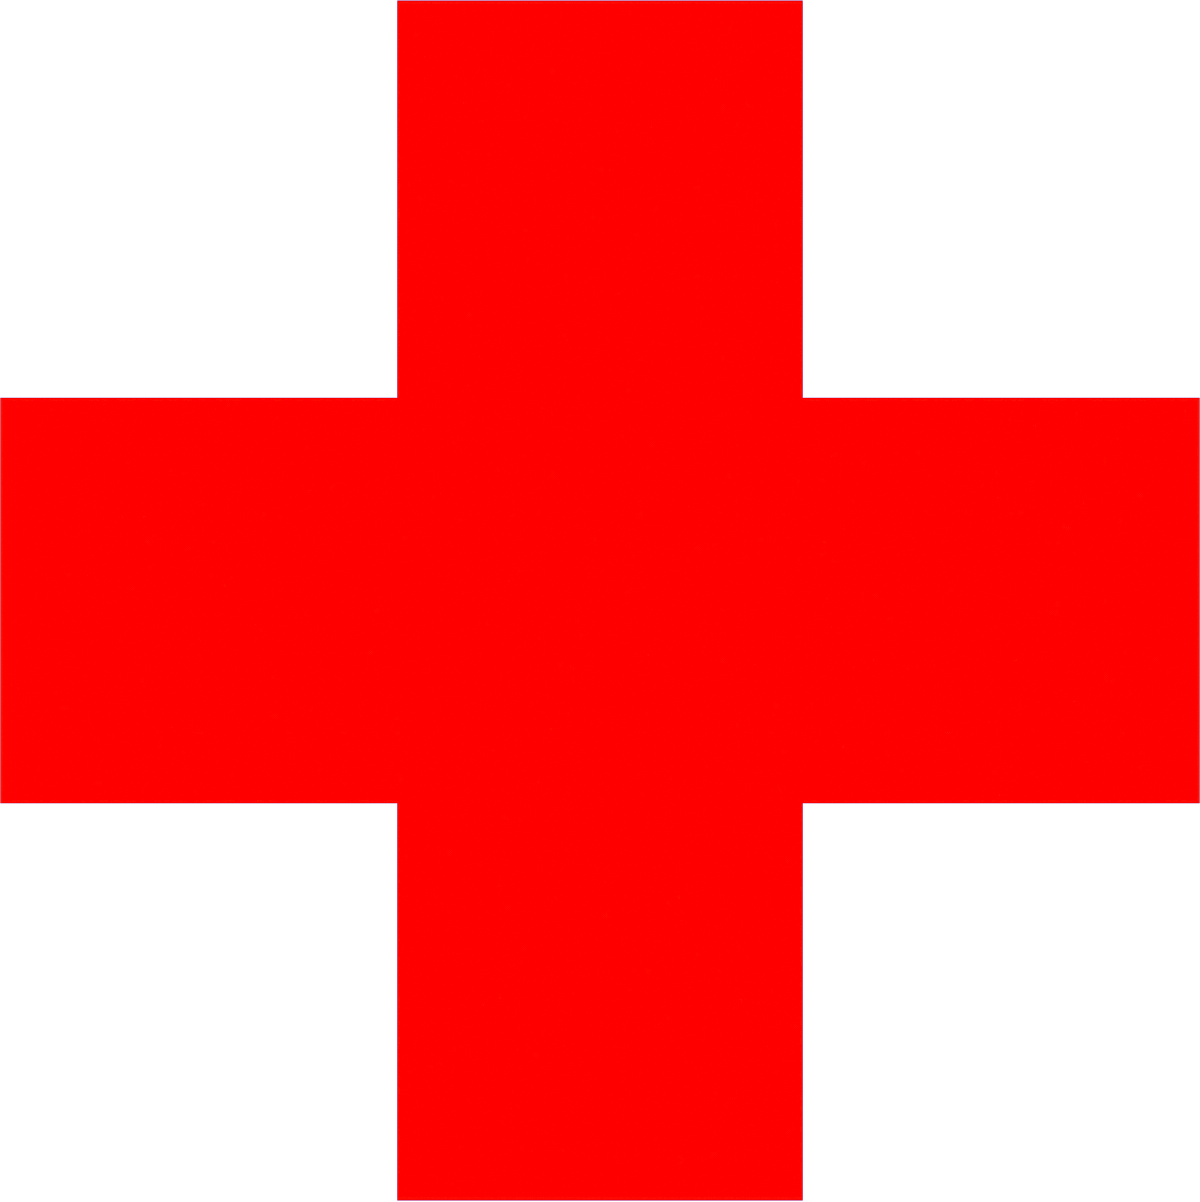 American red cross clipart vector freeuse download Image result for red cross logo | Calvin's Medikit | Pinterest vector freeuse download